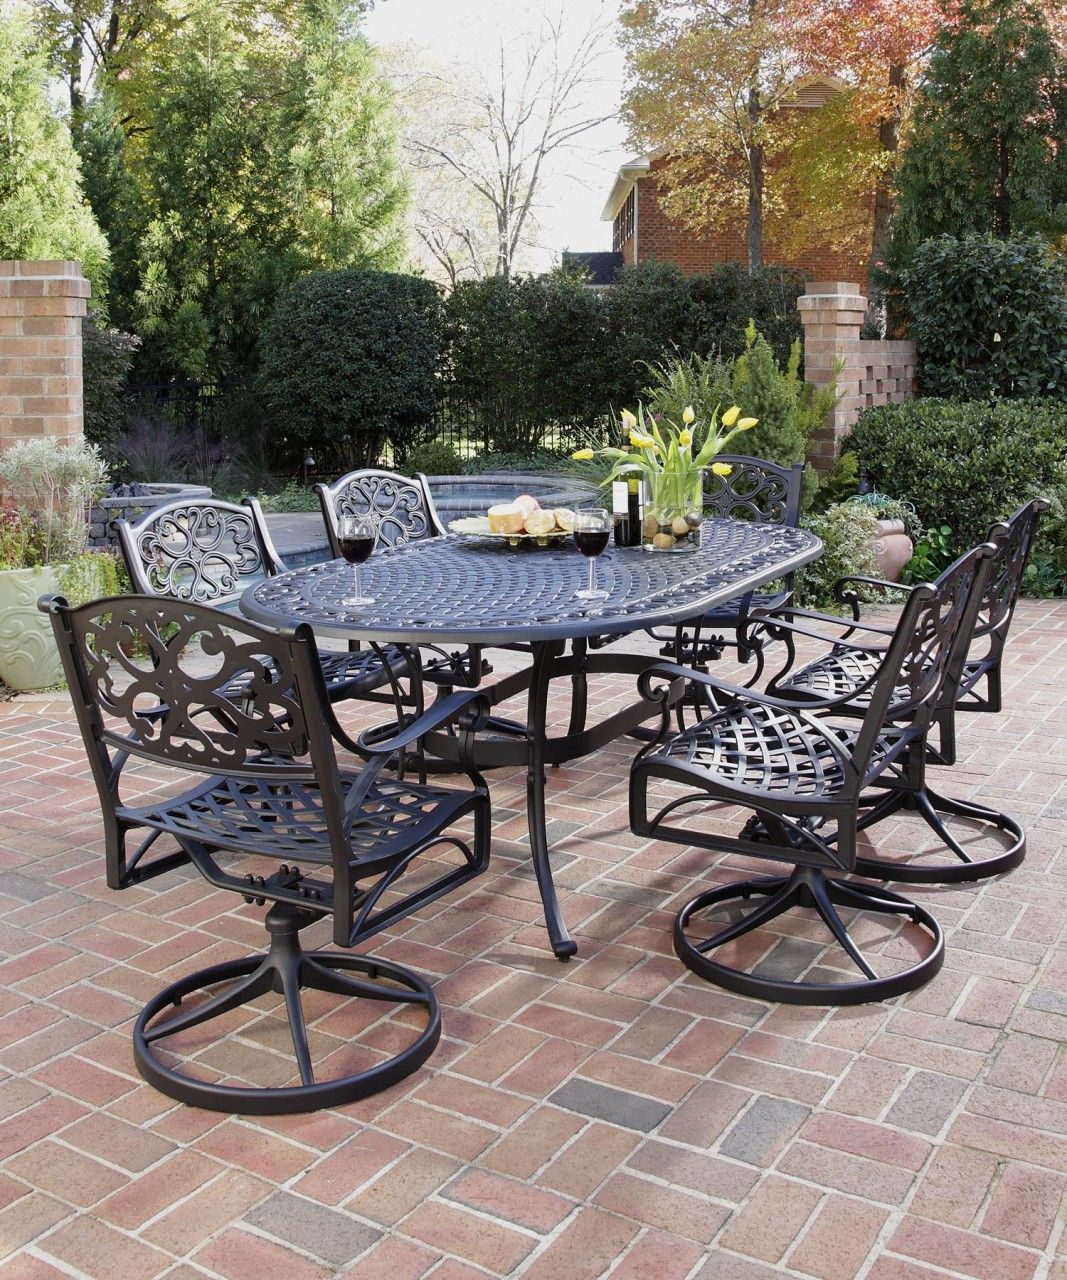 Wrought Iron Outdoor Furniture Clearance    peenmedia com    Home     Wrought Iron Outdoor Furniture Clearance    peenmedia com